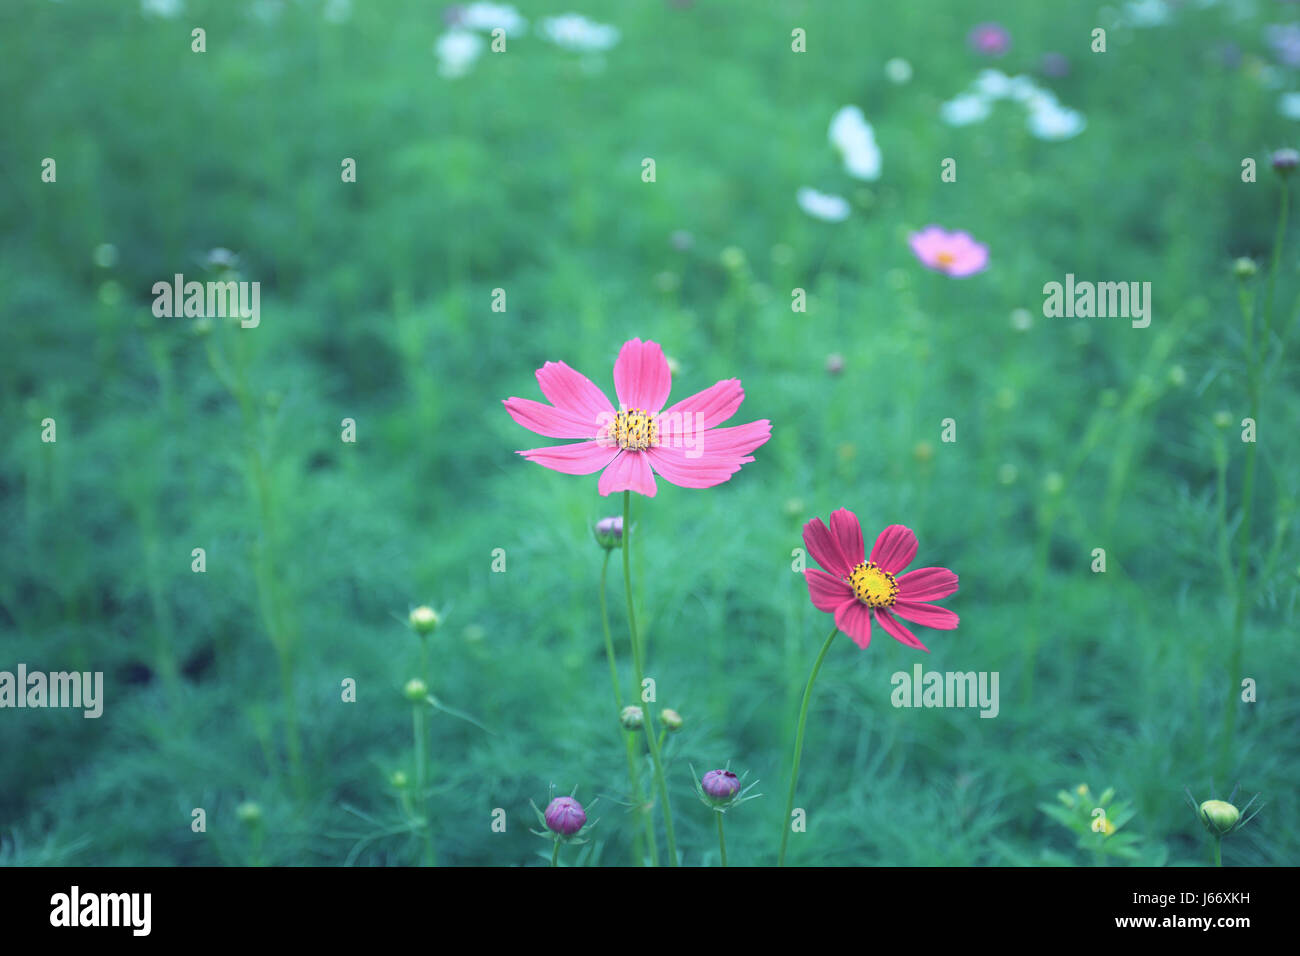 beautiful magenta cosmos flower in blur green field background with warm tone color process - Stock Image